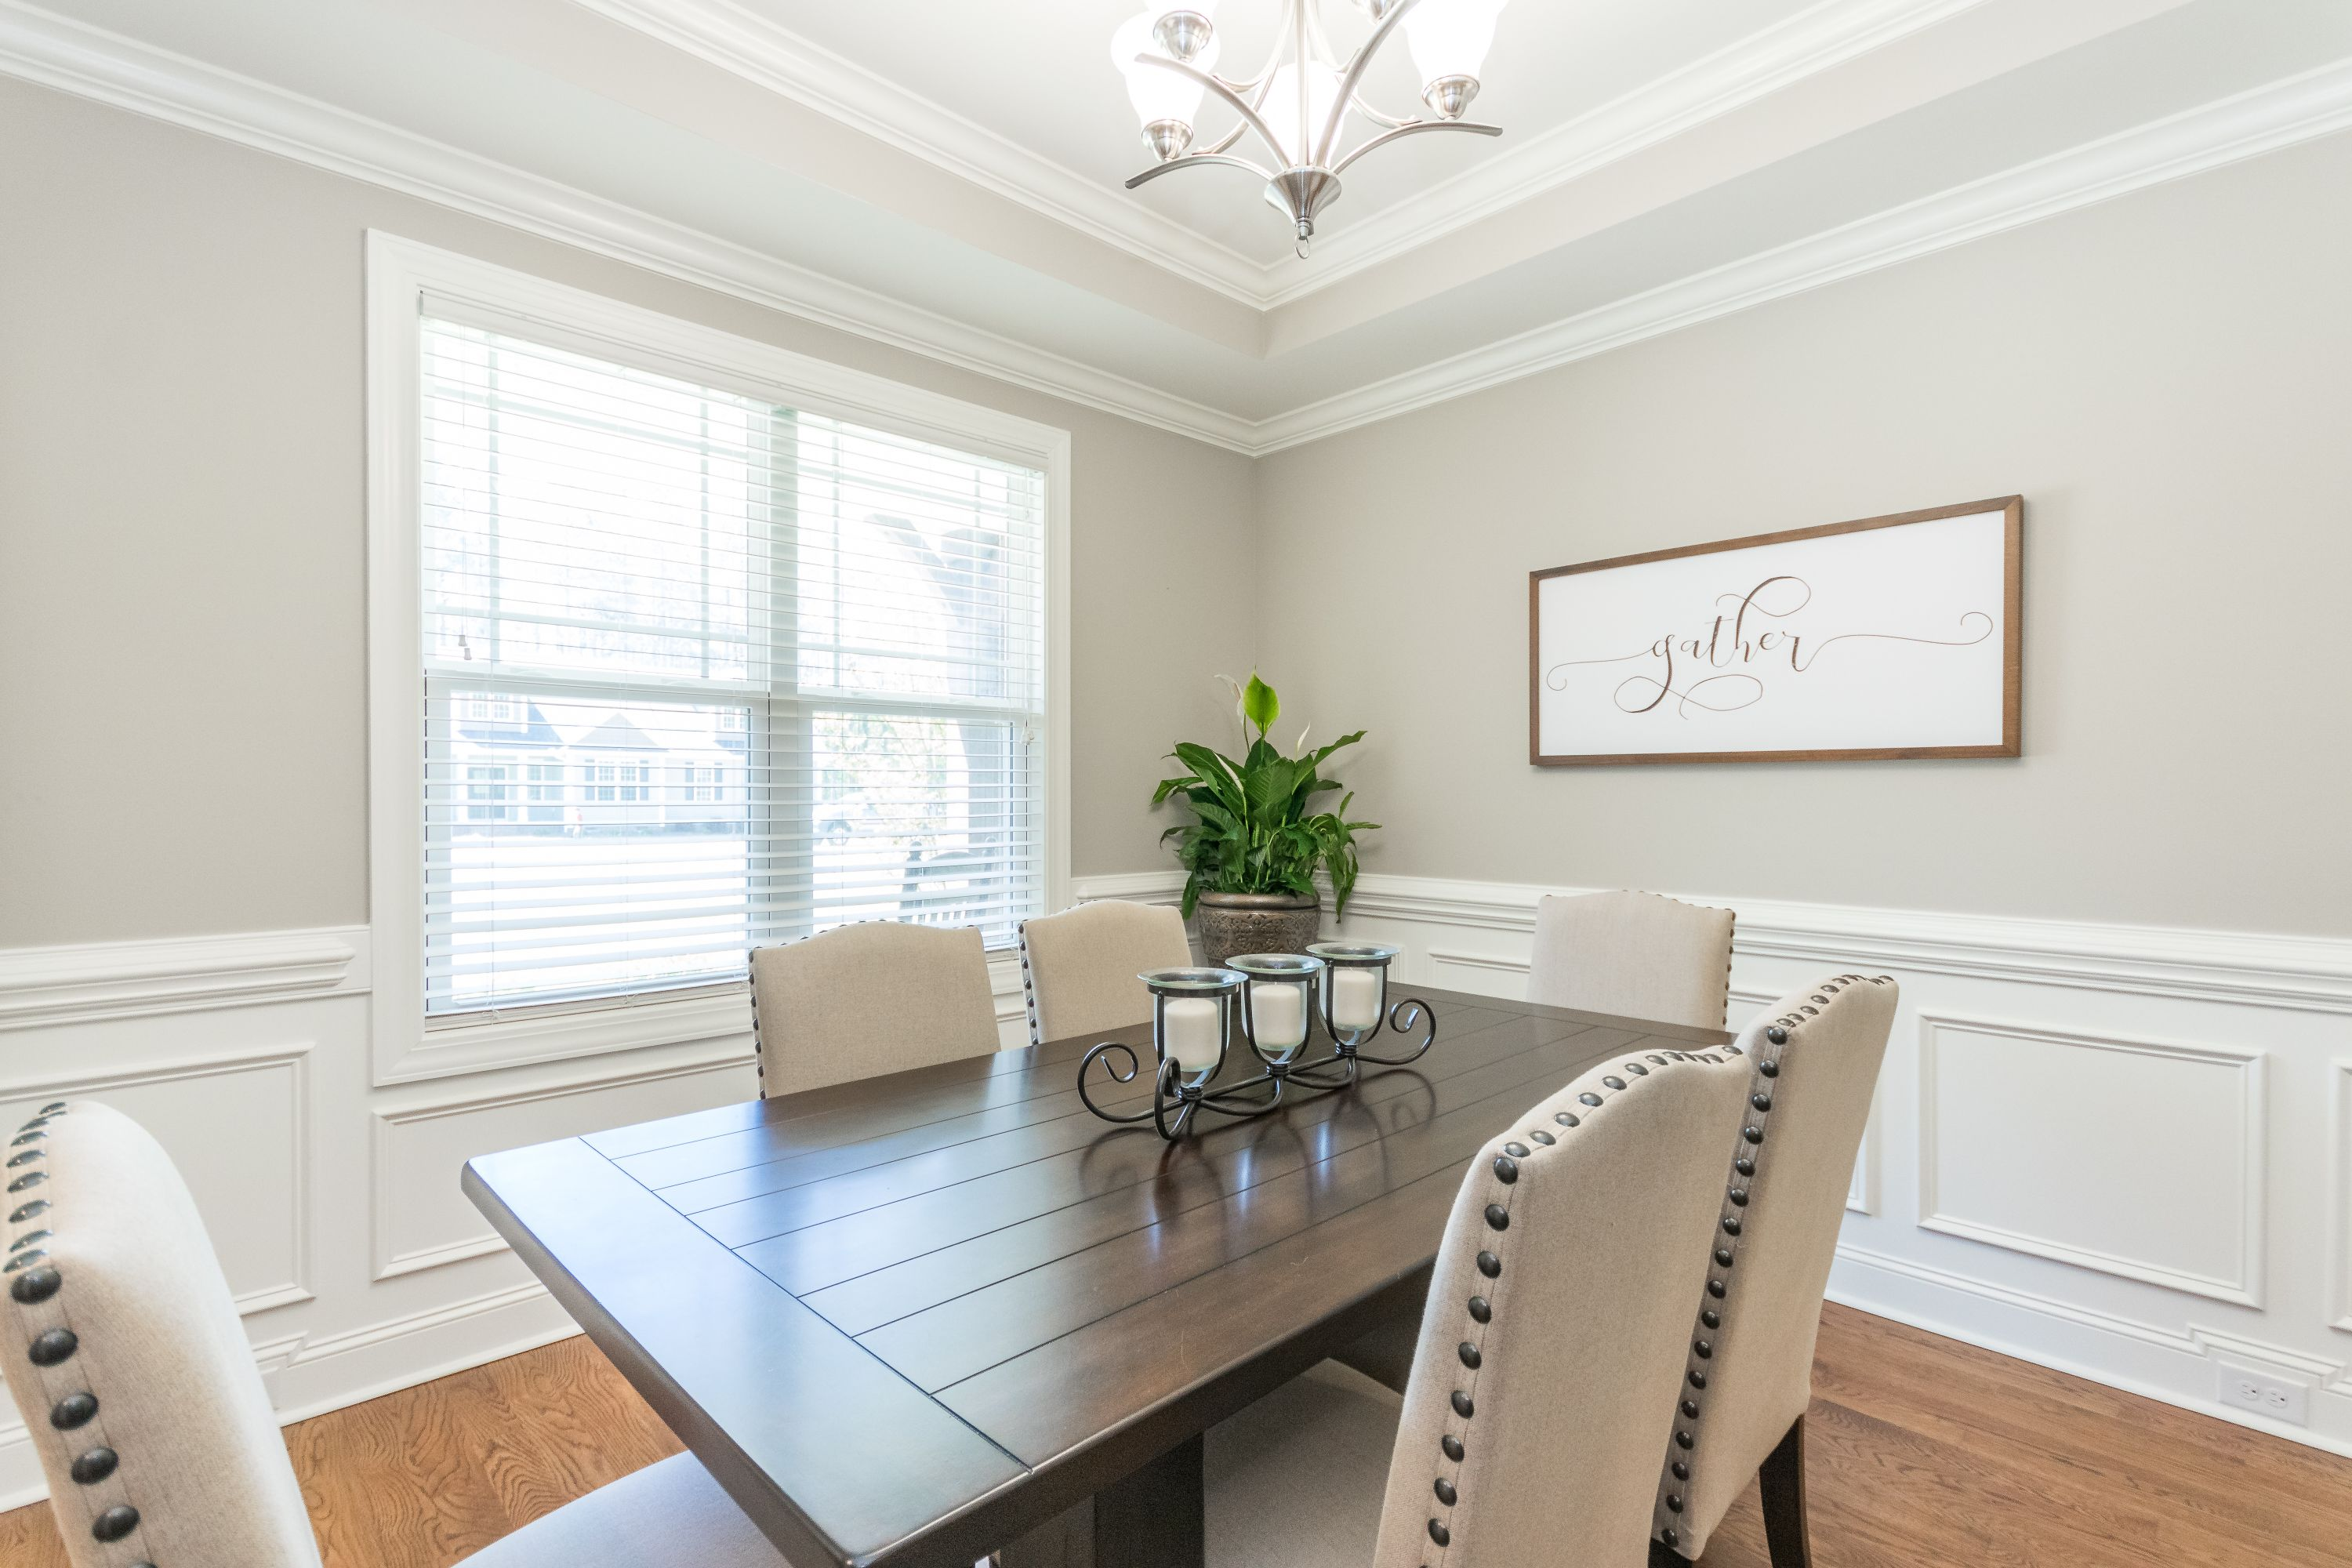 Formal dining room featuring hardwoods, wainscoting, custom trey ceiling and large gather framed artwork